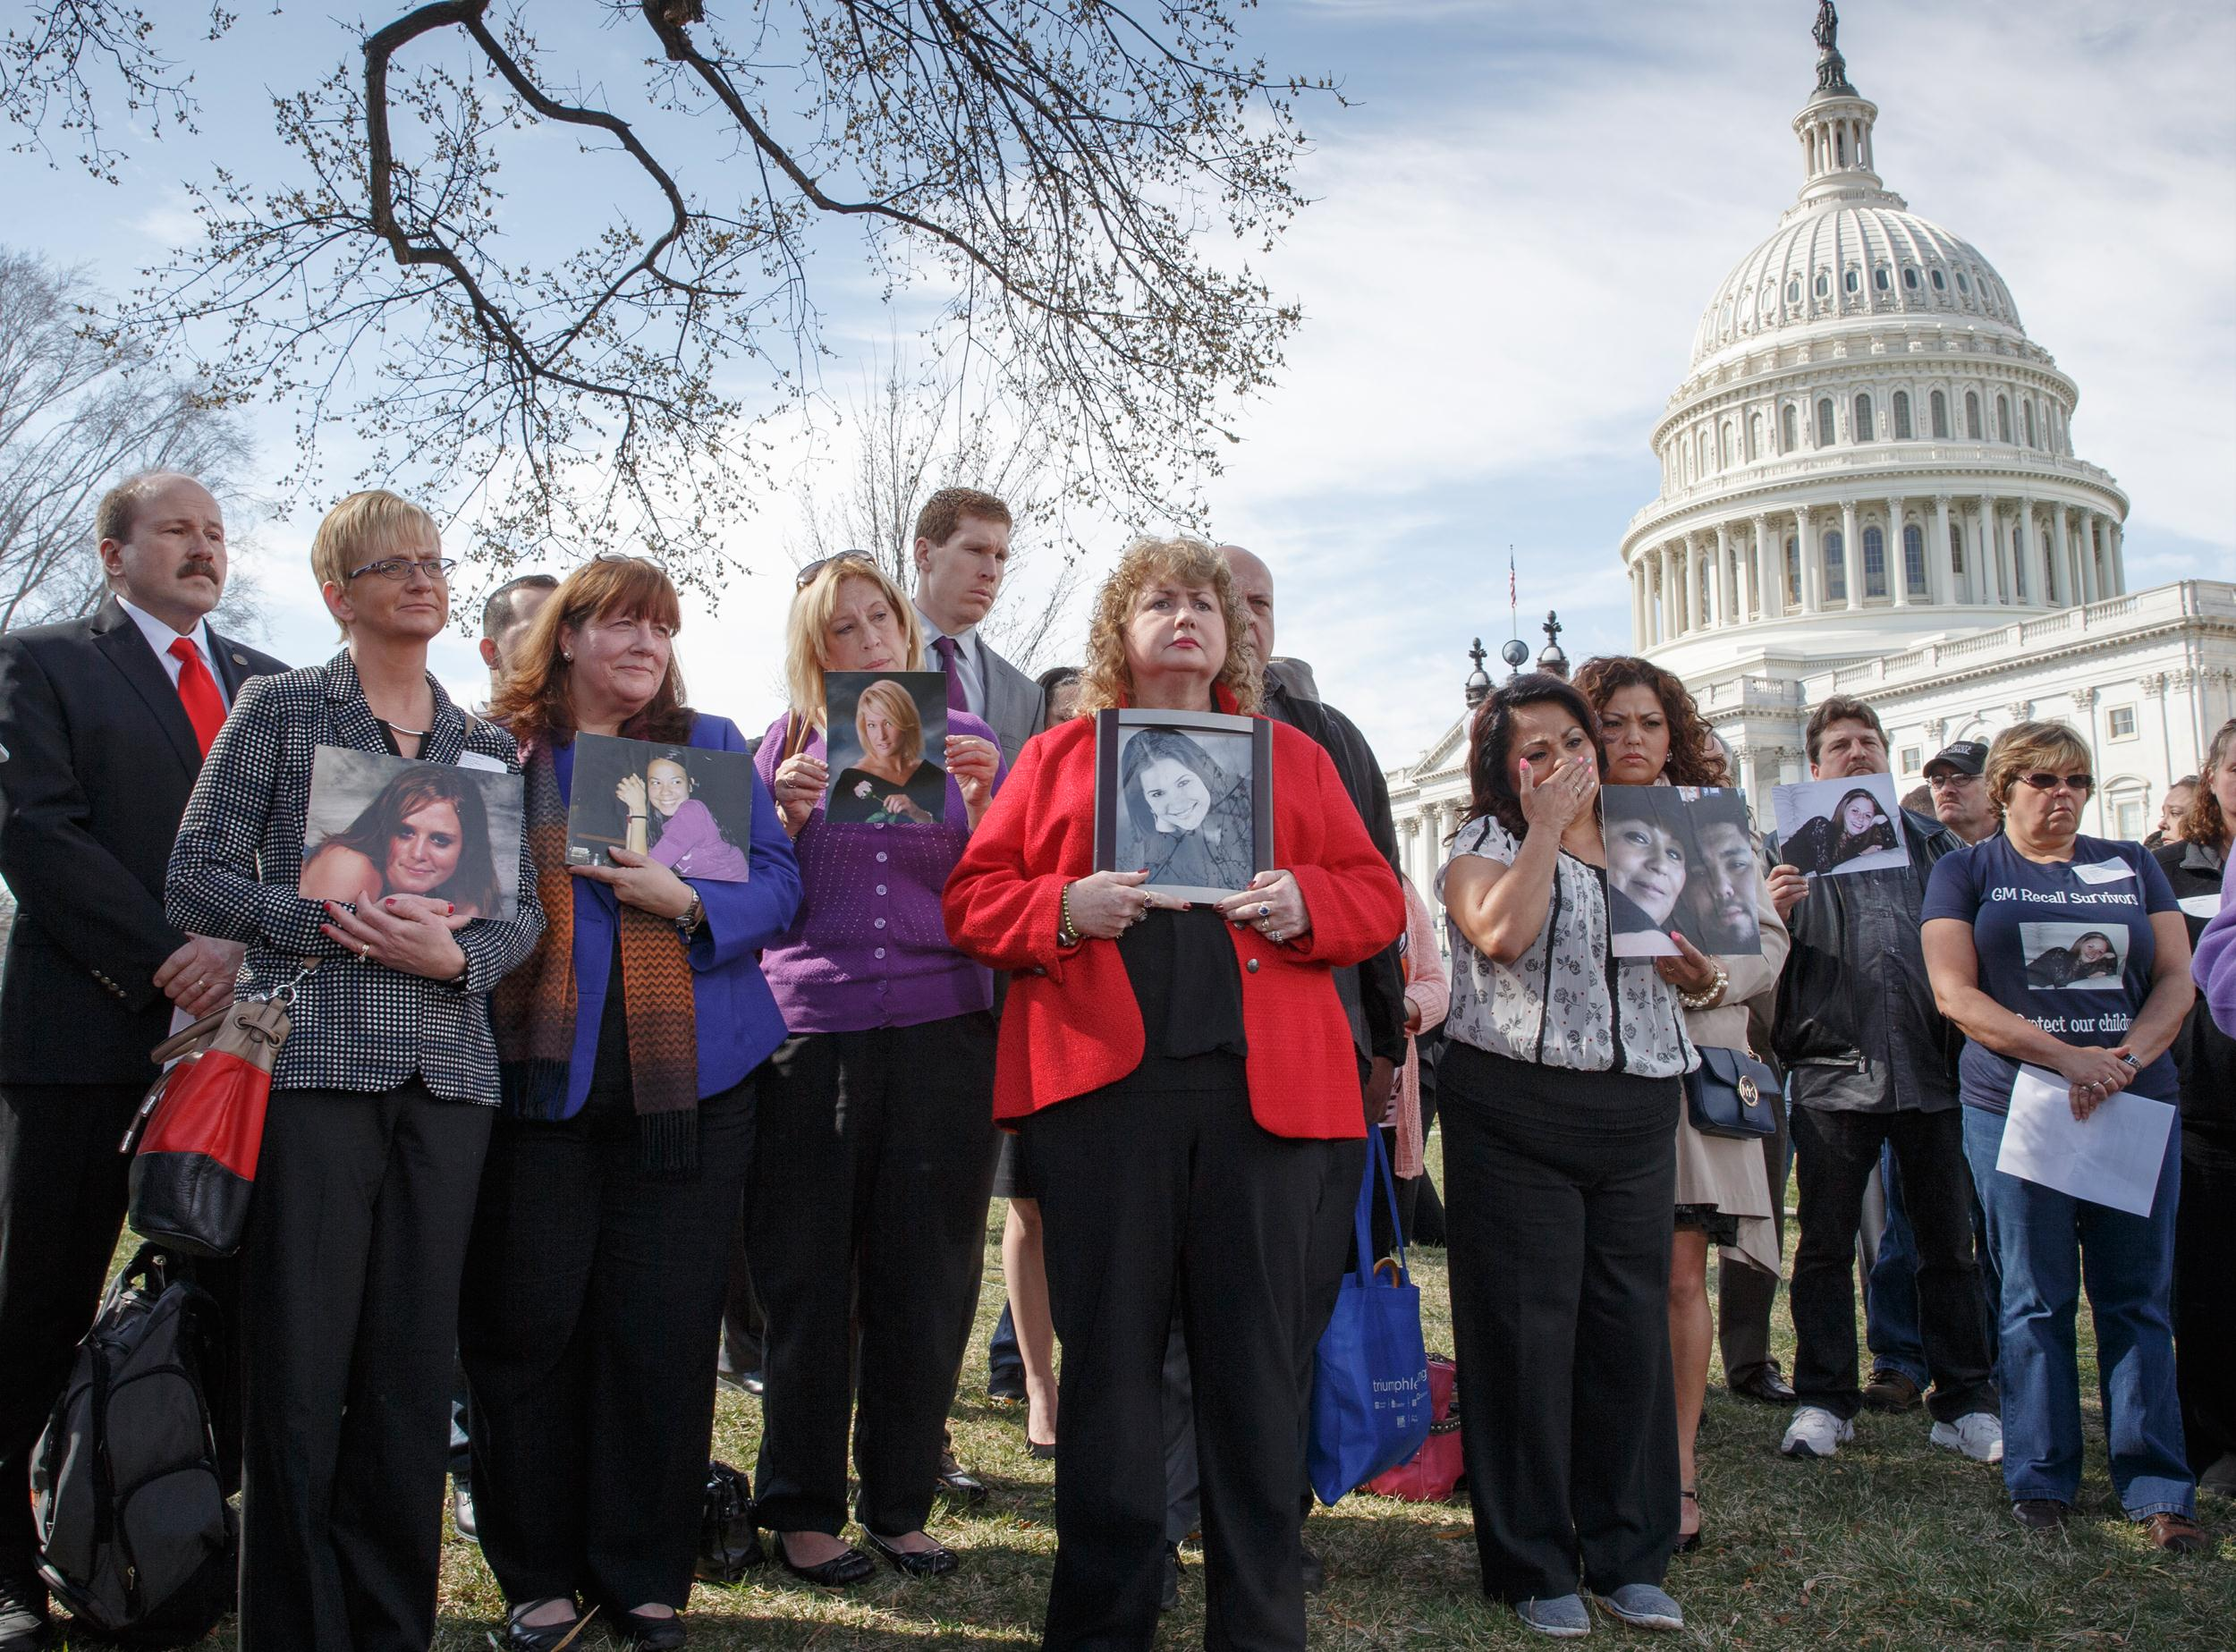 Image: Families of victims of a General Motors safety defects in small cars hold photos of their loved ones